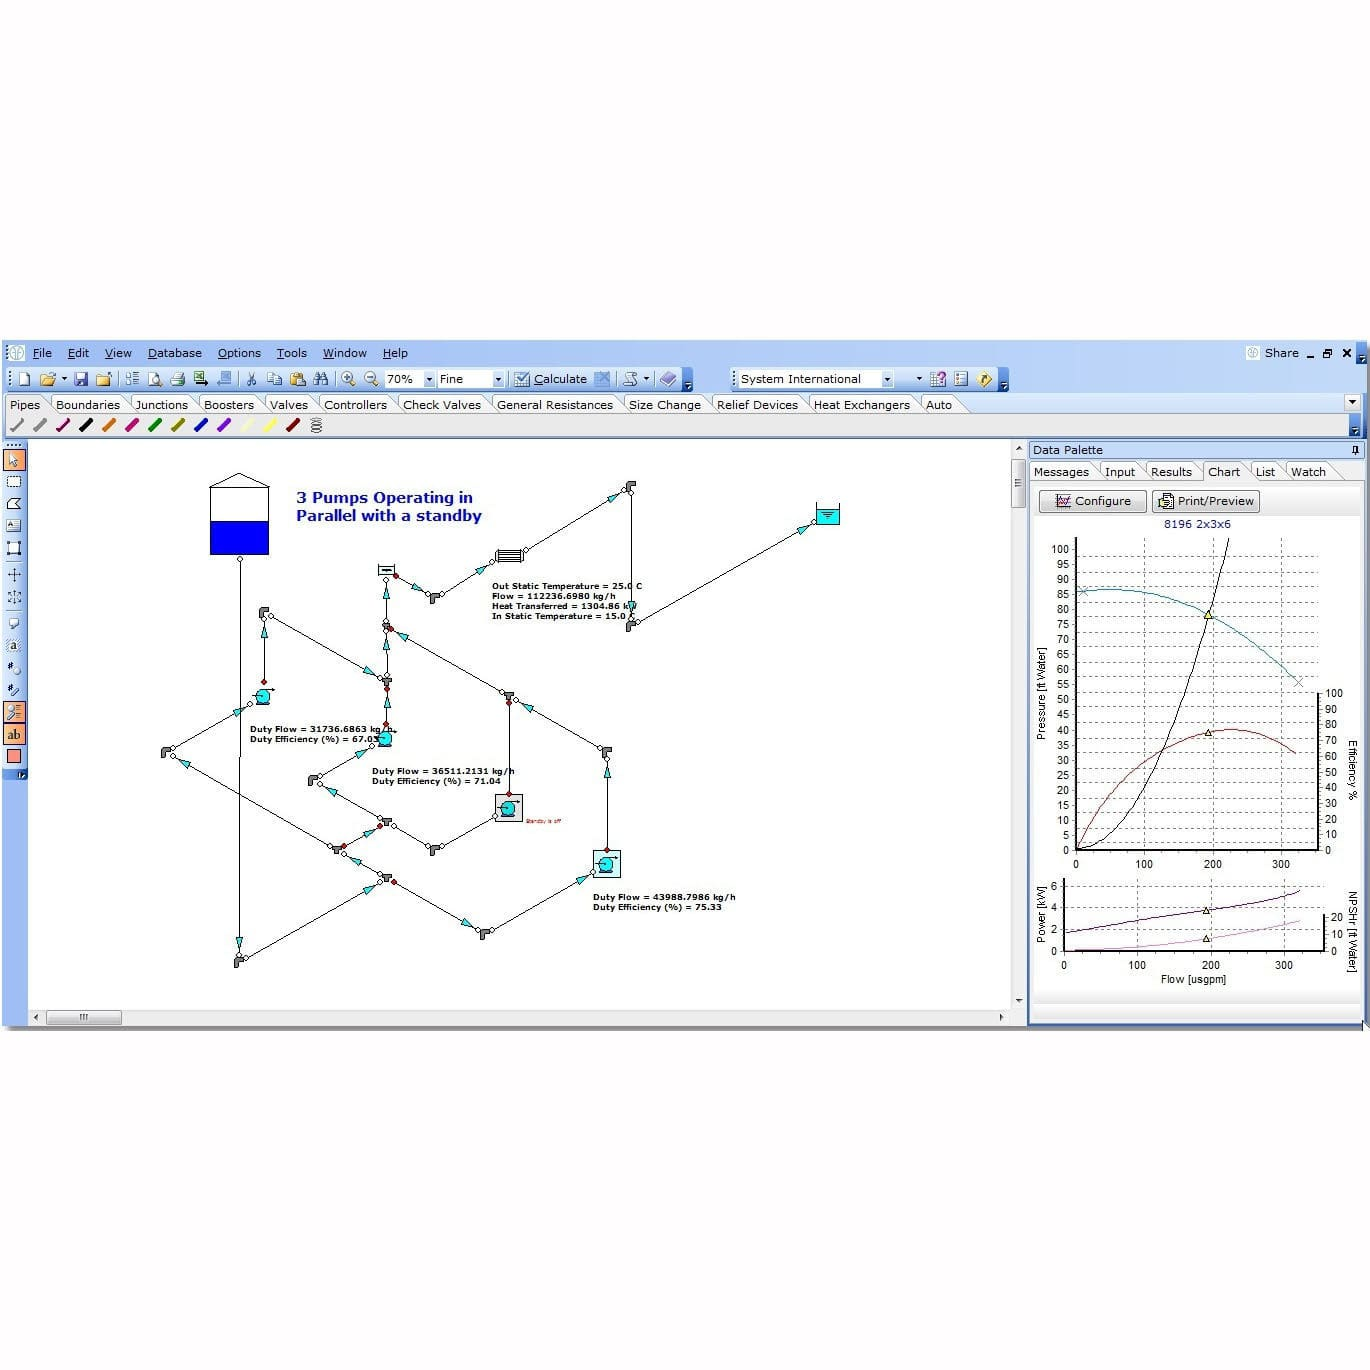 Pressure Drop Calculation Software Fluid Dynamics Simulation Is Very Useful When Simulating This Type Of Circuit Diagram Design Optimization Fluidflow